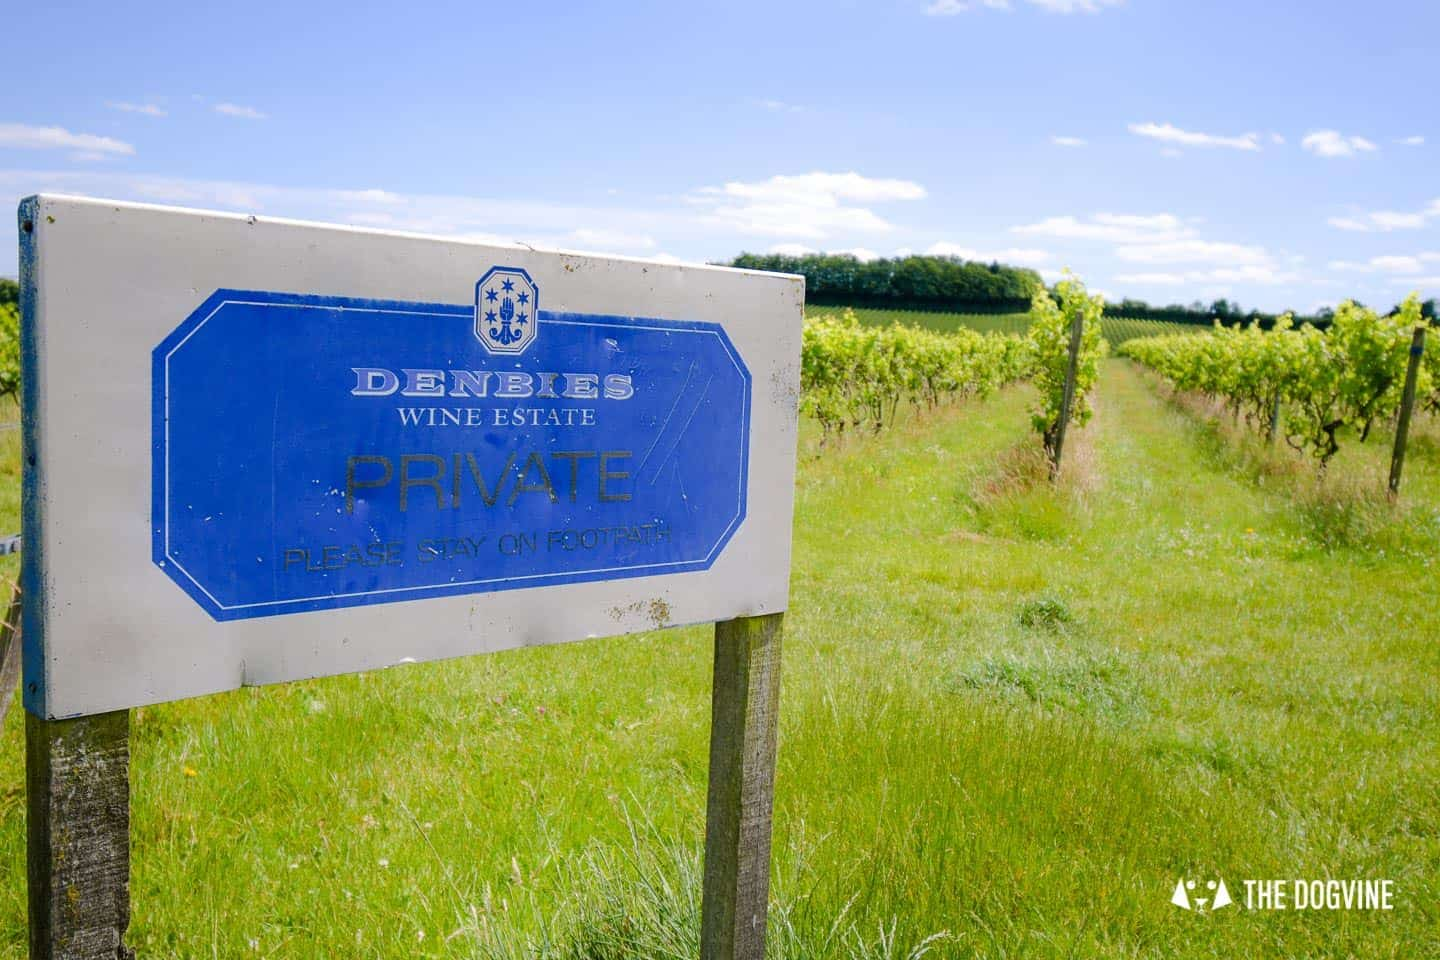 Denbies Dog-friendly Vineyard | A Delightful Day Out 2